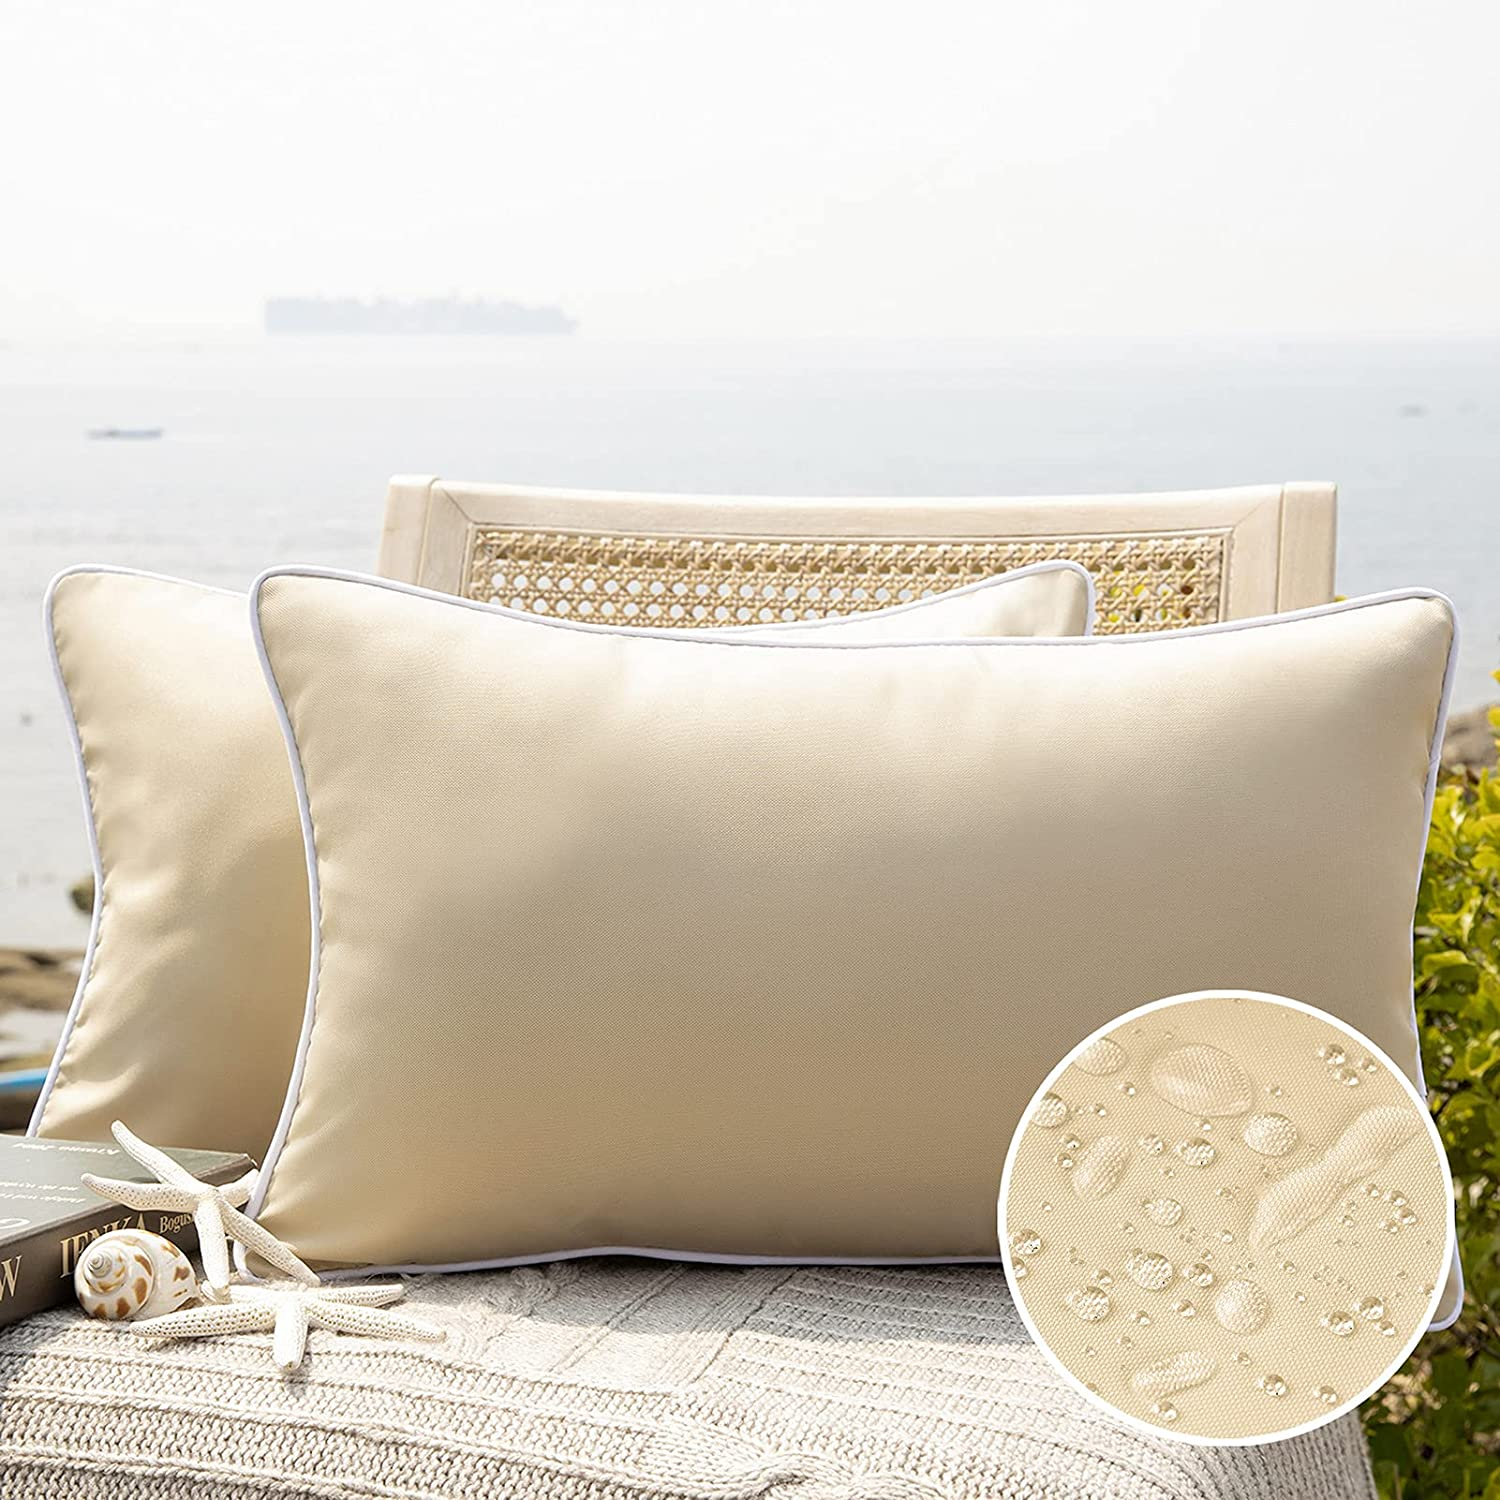 Phantoscope Pack of 2 Outdoor Waterproof Throw Pillow Covers Decorative Square Outdoor Pillows Cushion Case Patio Pillows for Couch Tent Sunbrella, Beige 12x20 inches 30x50 cm : Garden & Outdoor